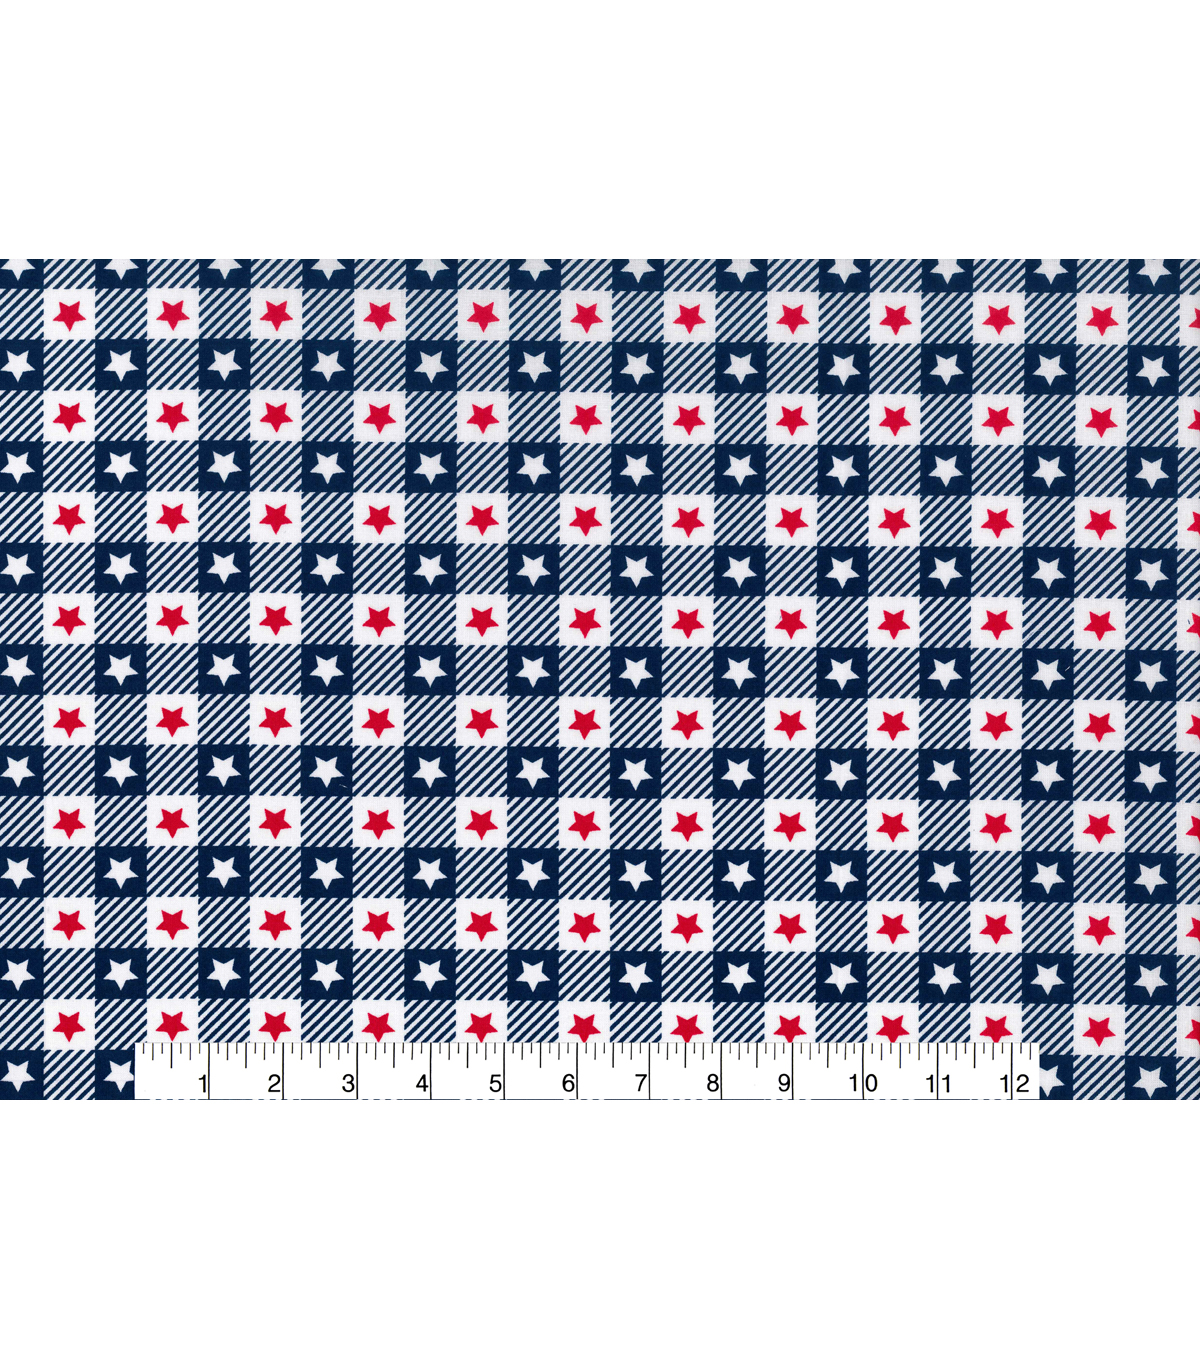 Patriotic Cotton Fabric -Blue Check with Red & White Stars